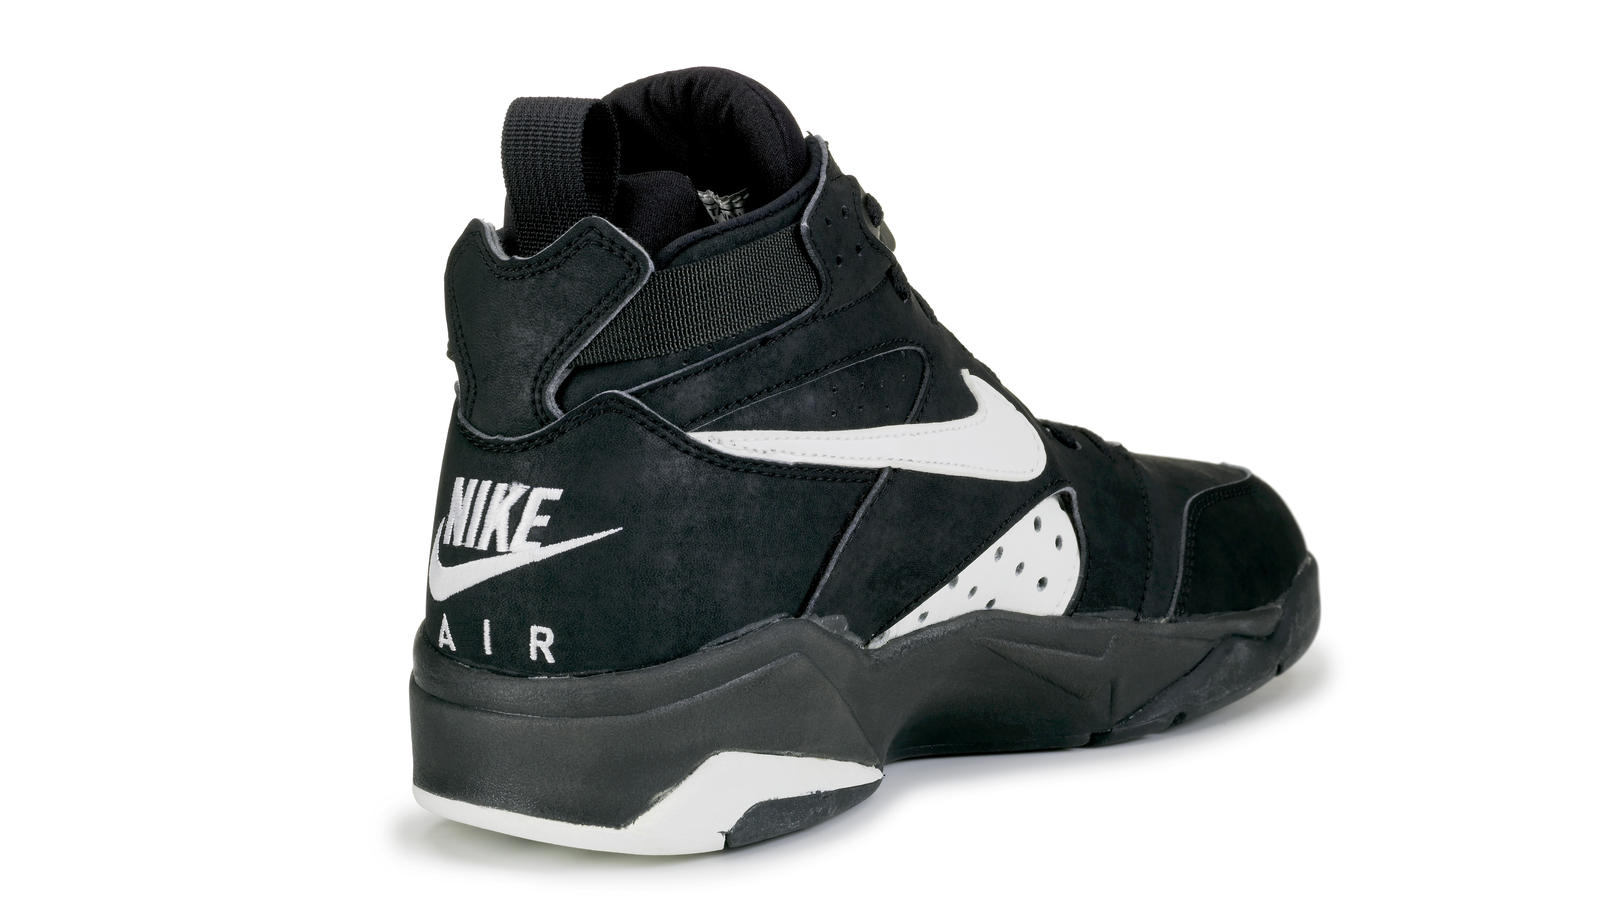 reputable site 9bff6 51e01 Rewind back to Nike s Holiday 1992 footwear lineup and you ll come across a  hidden gem that plays an influential role in basketball shoe design to this  day.